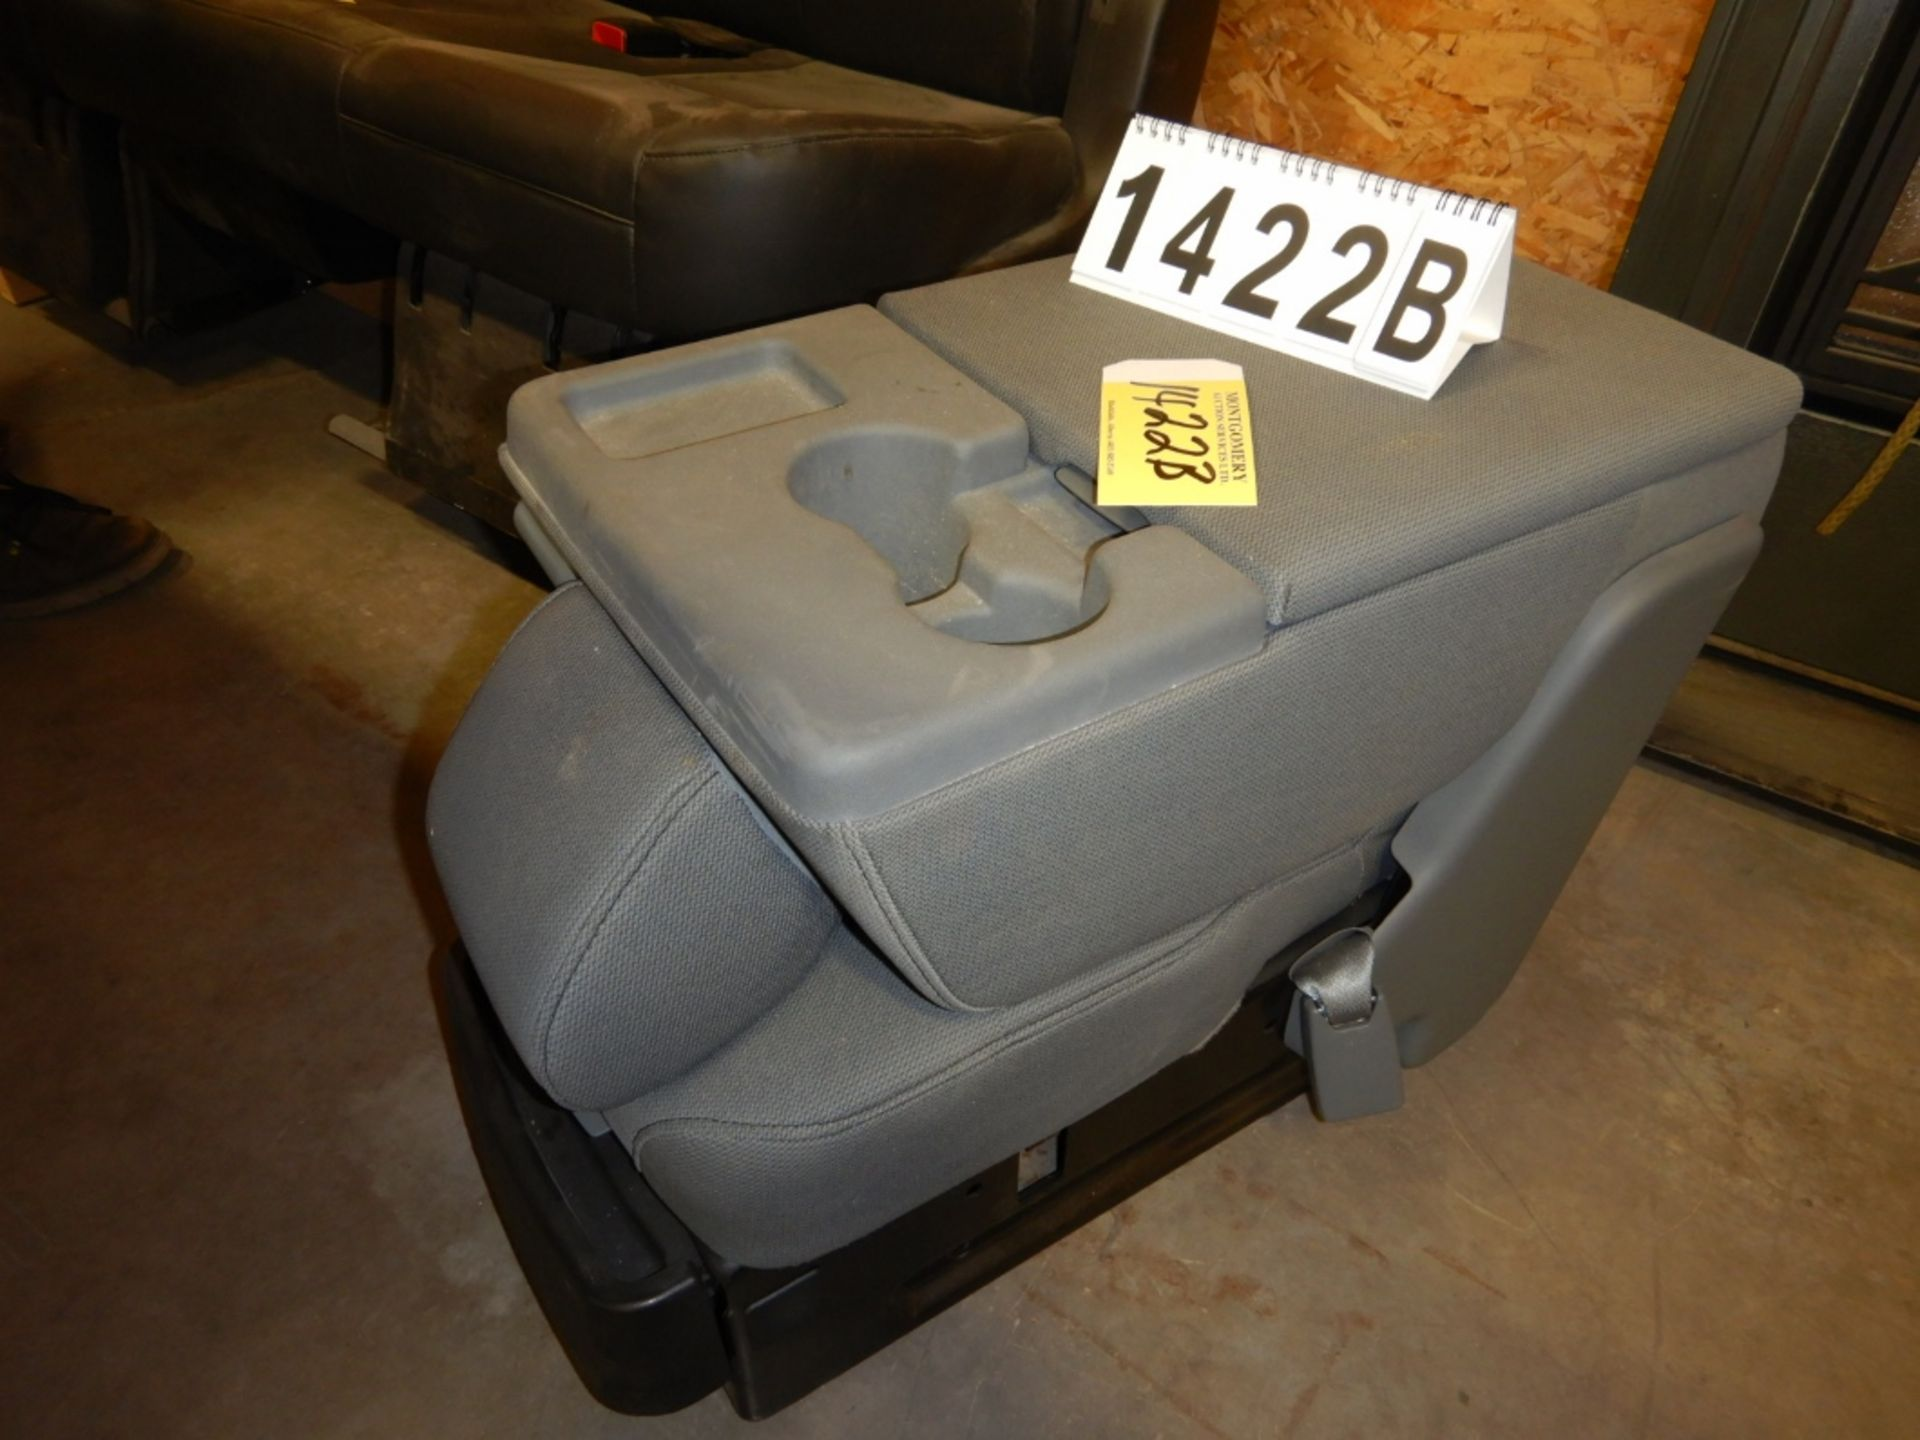 Lot 1422b - CONSOLE FOR VEHICLE